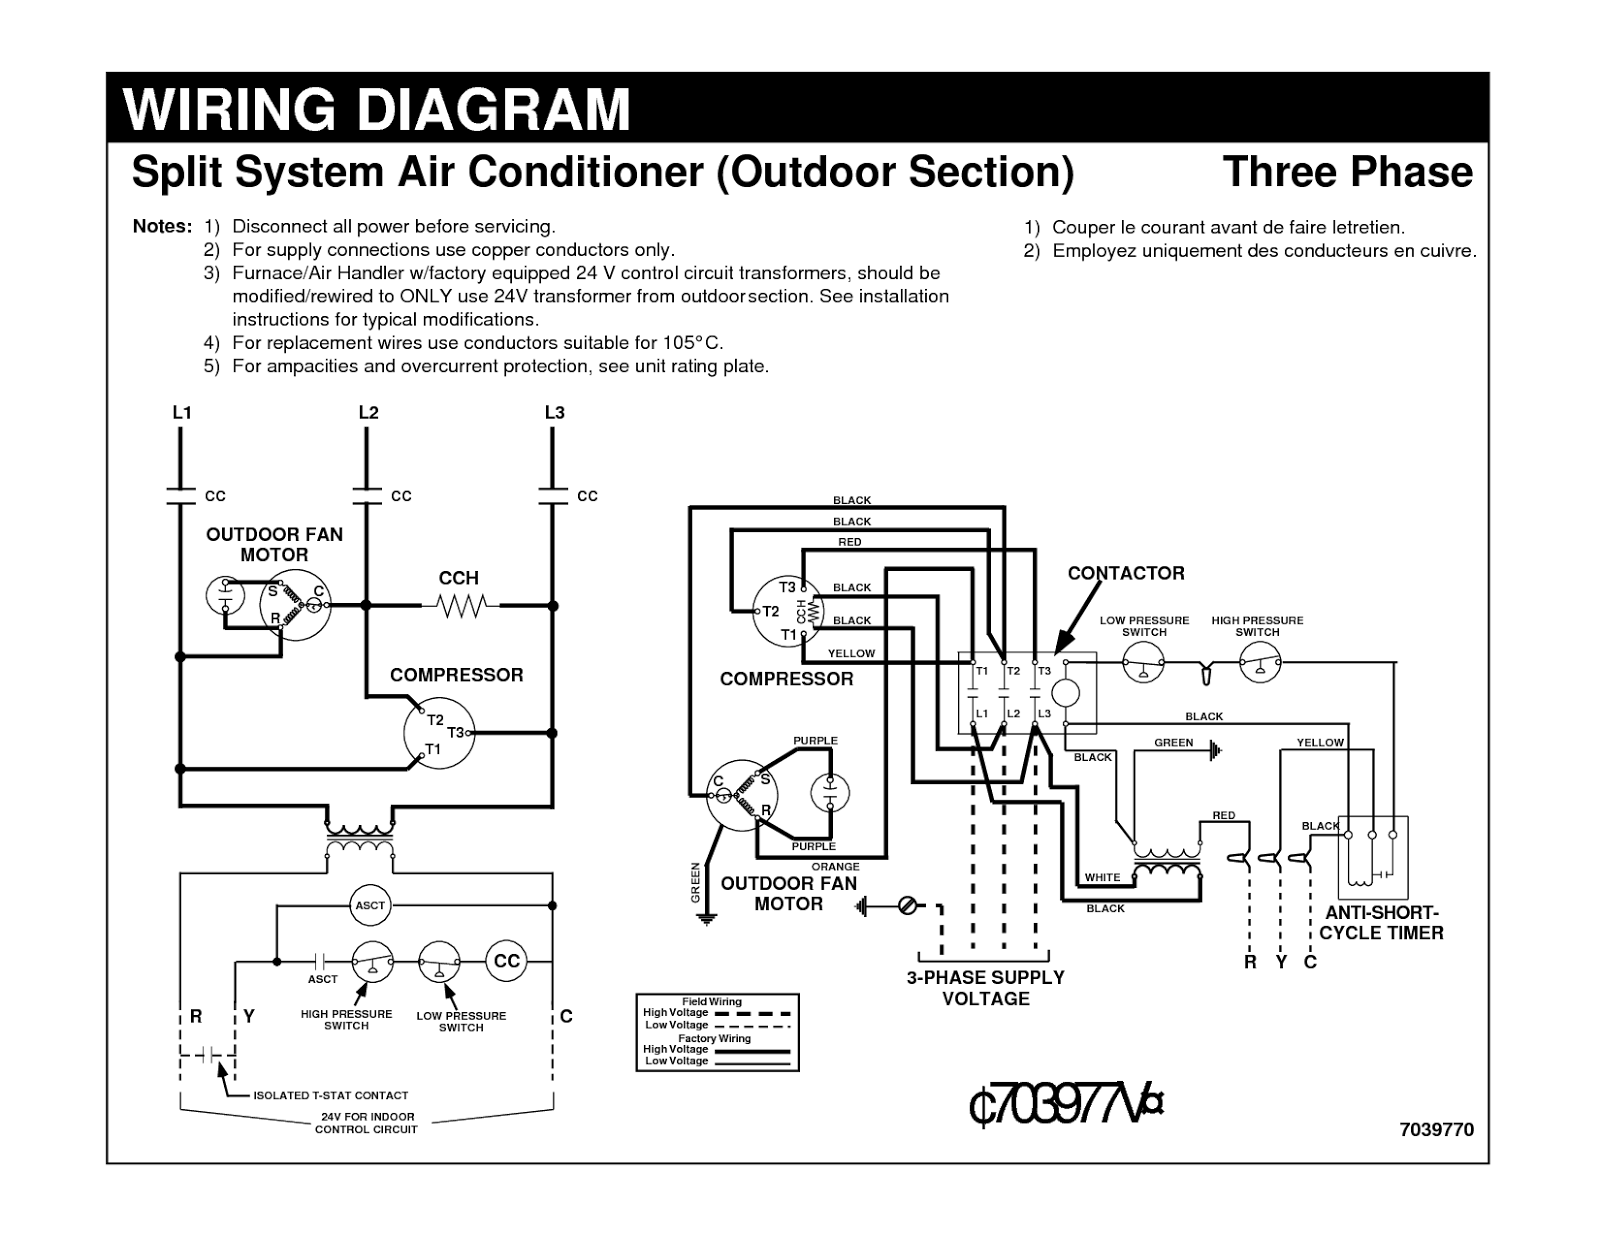 line wiring diagram electrical wiring diagrams for air conditioning systems part one fig 1